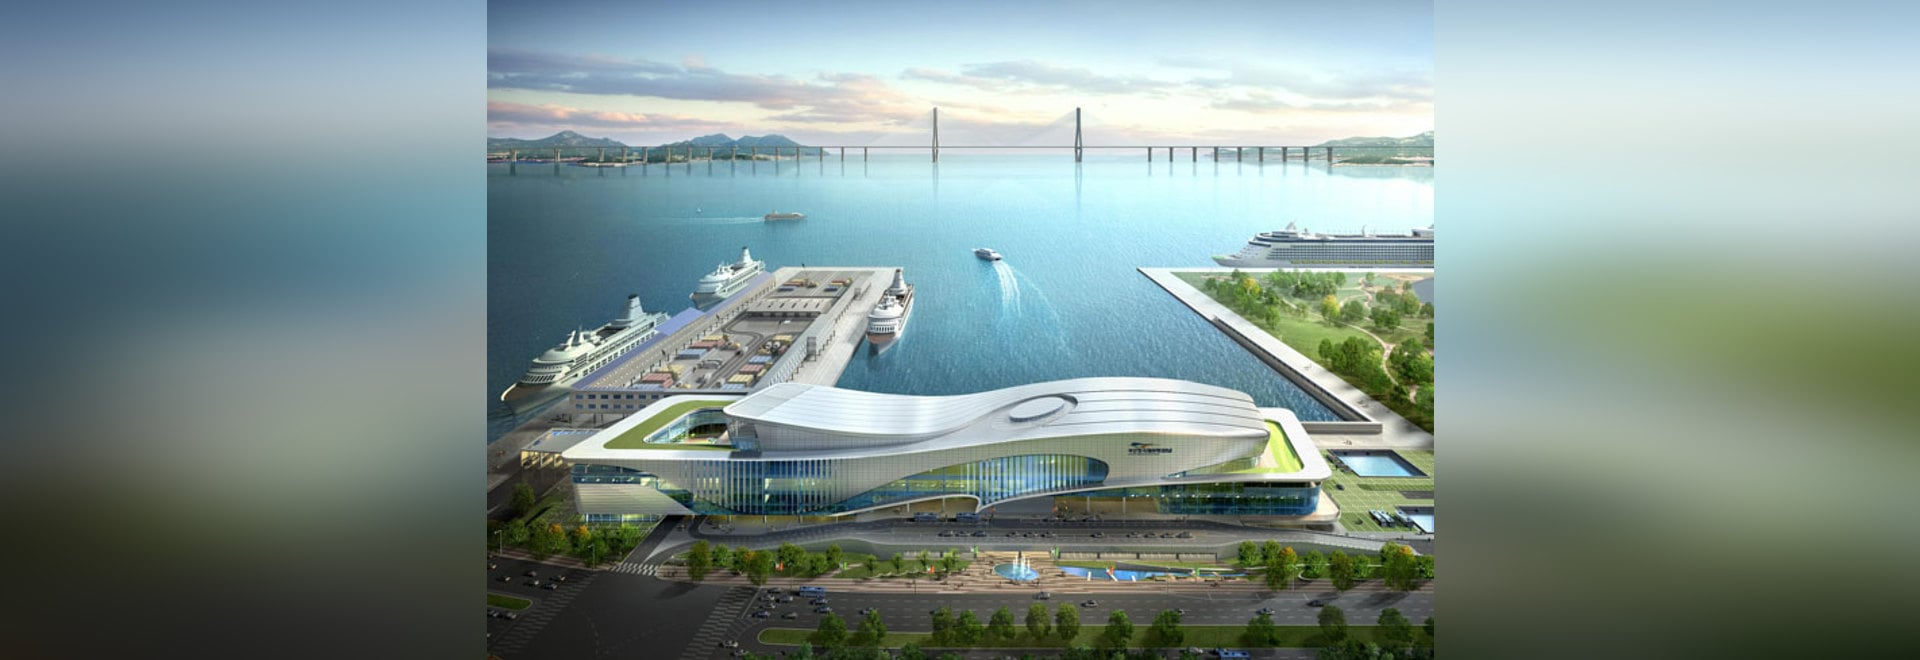 Busan Port Keeps Pace with Booming Cruise Demand